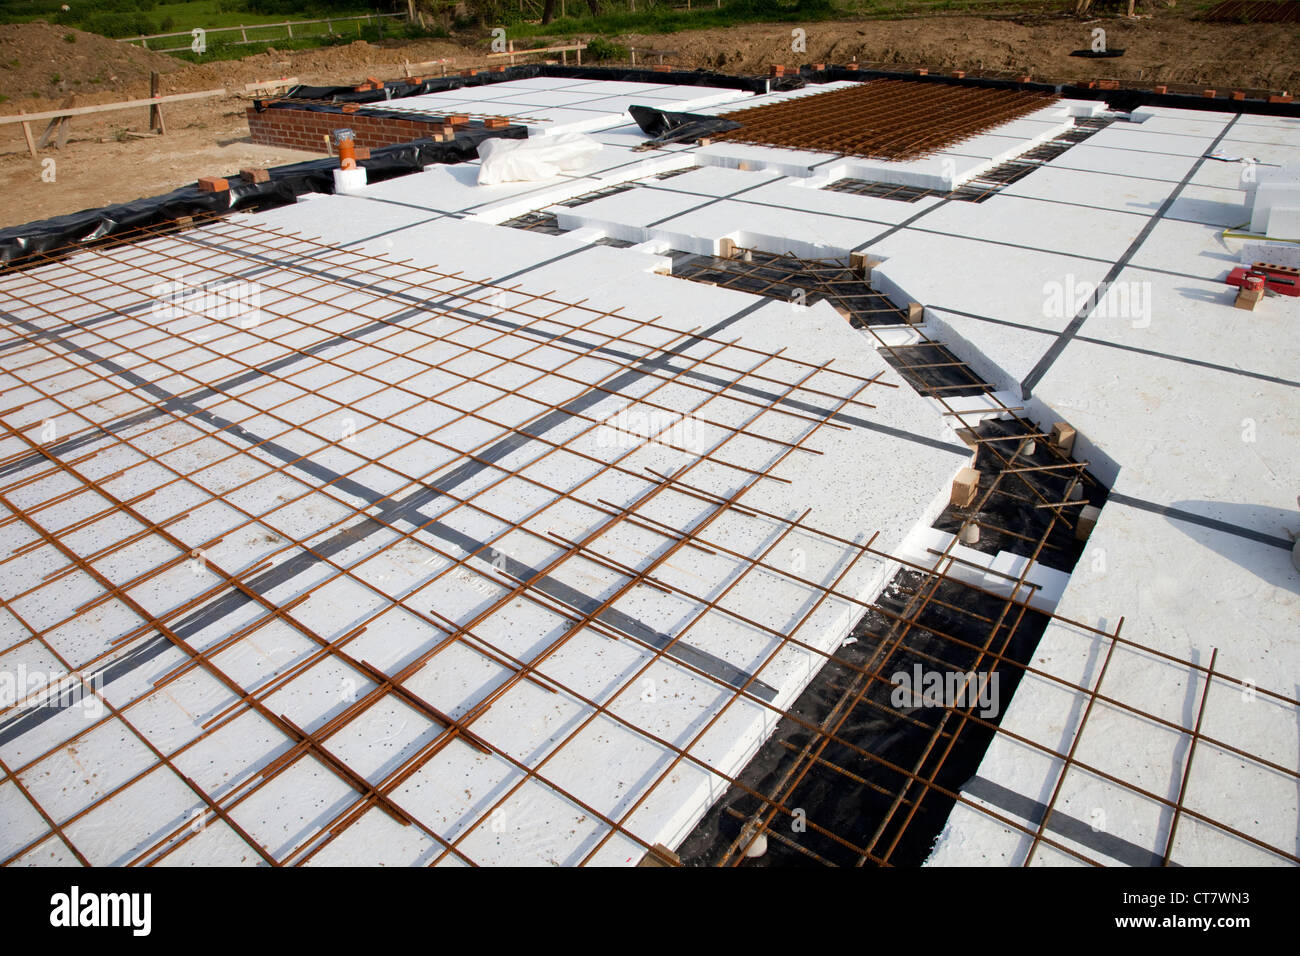 Steel Reinforcement Mesh A252 On Insulated Passive Slab Colemans Hill Farm New Build Chipping Campden UK